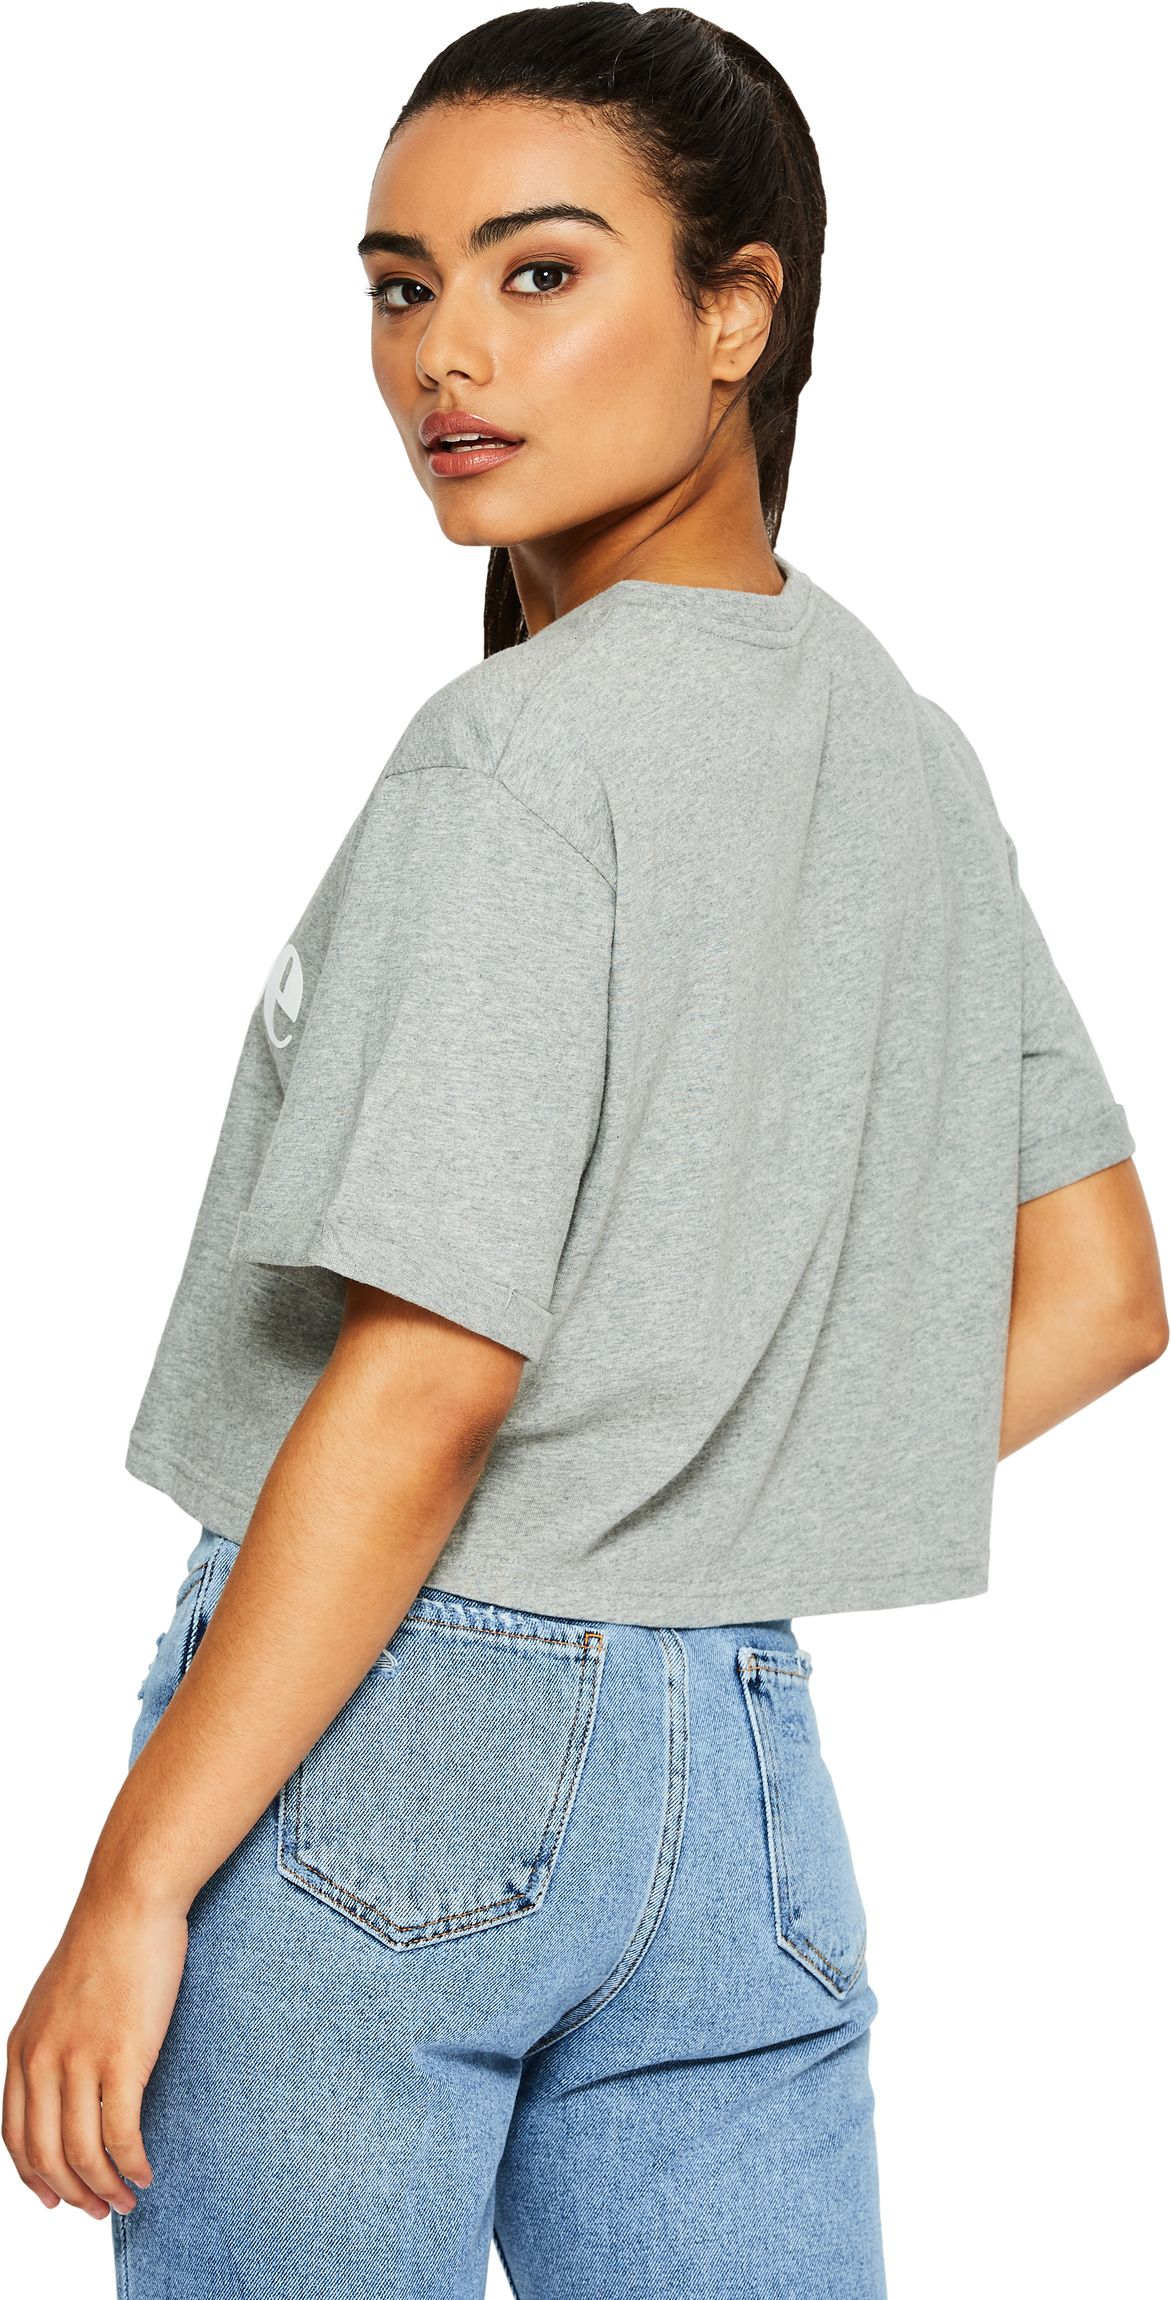 Ellesse-T-Shirts-amp-Tops-Women-039-s-Assorted-Fit-Styles thumbnail 27